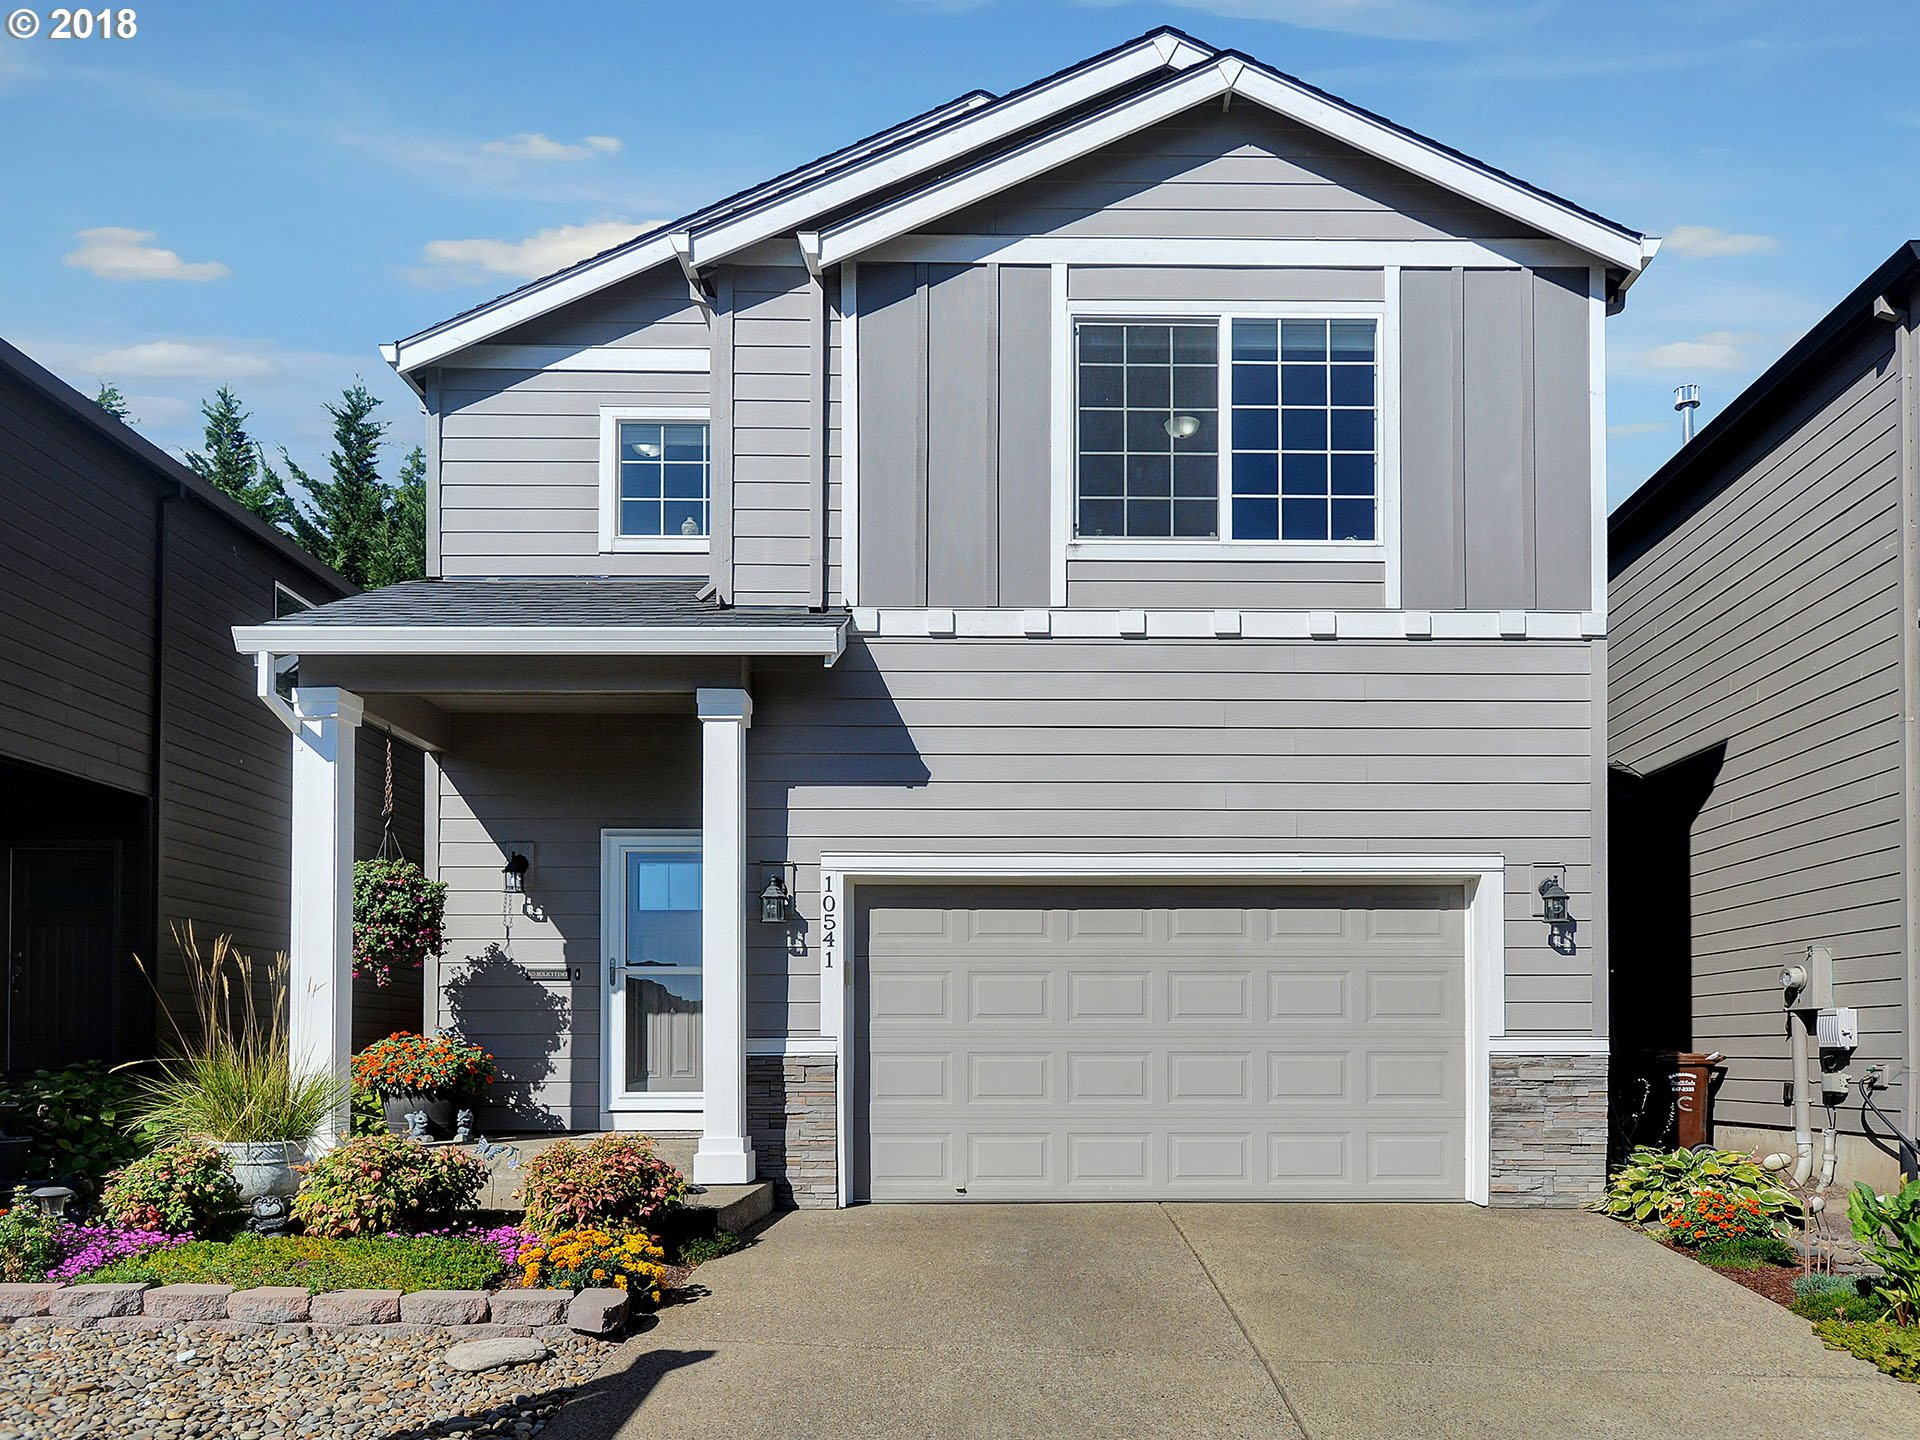 Like new home on quiet street. Open floor plan on main level. Nice rooms upstairs. Laundry room on upper level. Great back yard space (large covered patio). Central air conditioning. Open house scheduled for 9/8 (if it is still for sale?). Hurry! Yahoo, no HOA Dues!